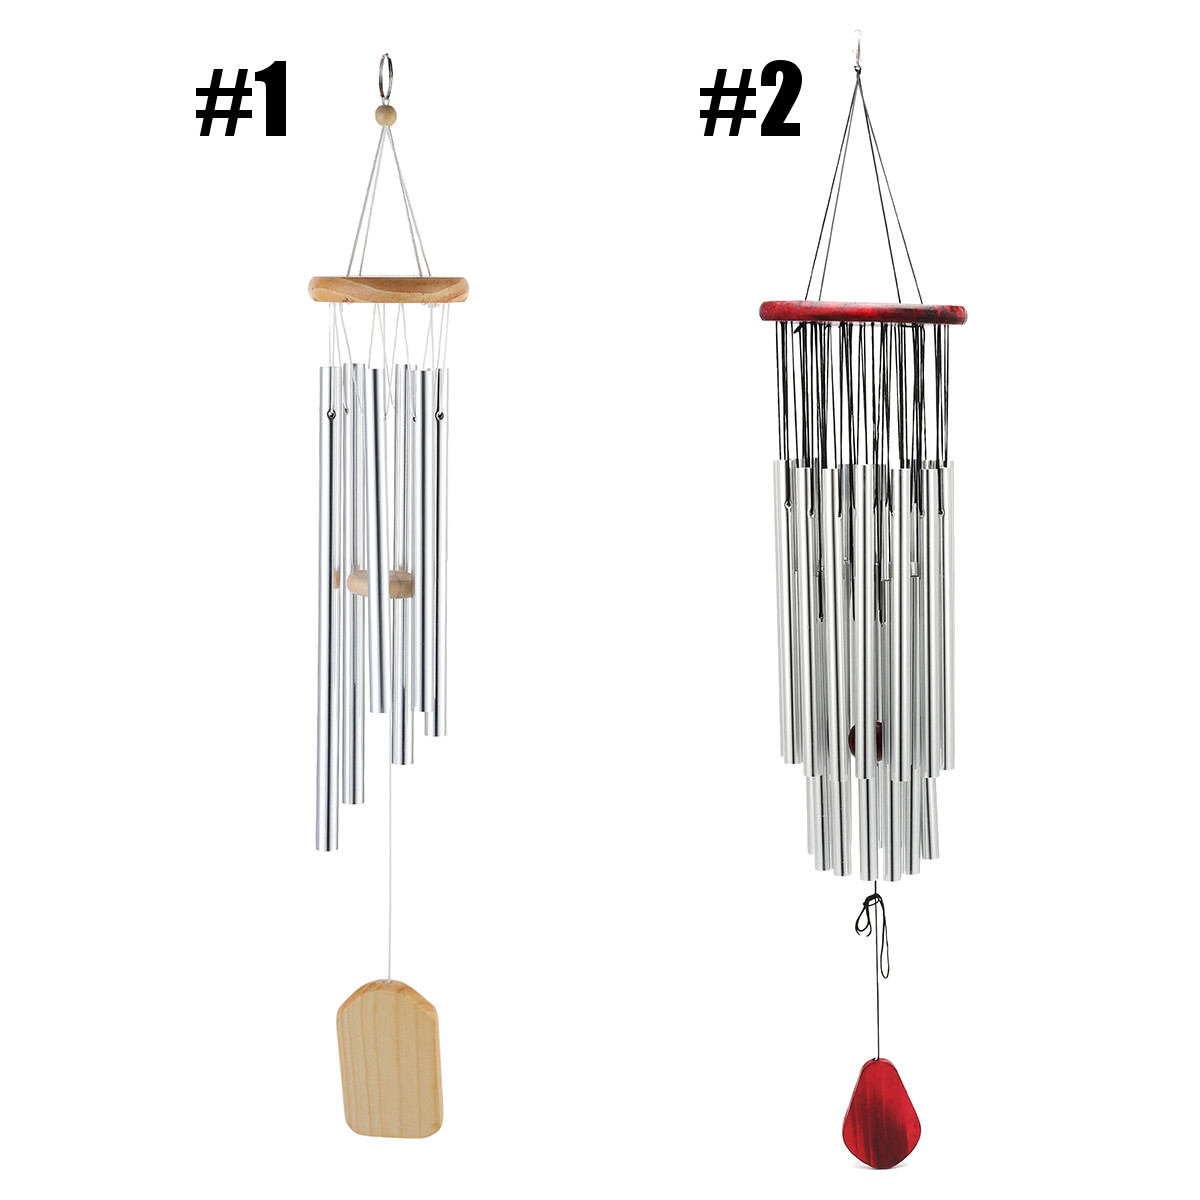 3pcs Window Garden Yard Wind Chime Home Room Decor Gifts 6 Tubes Bells